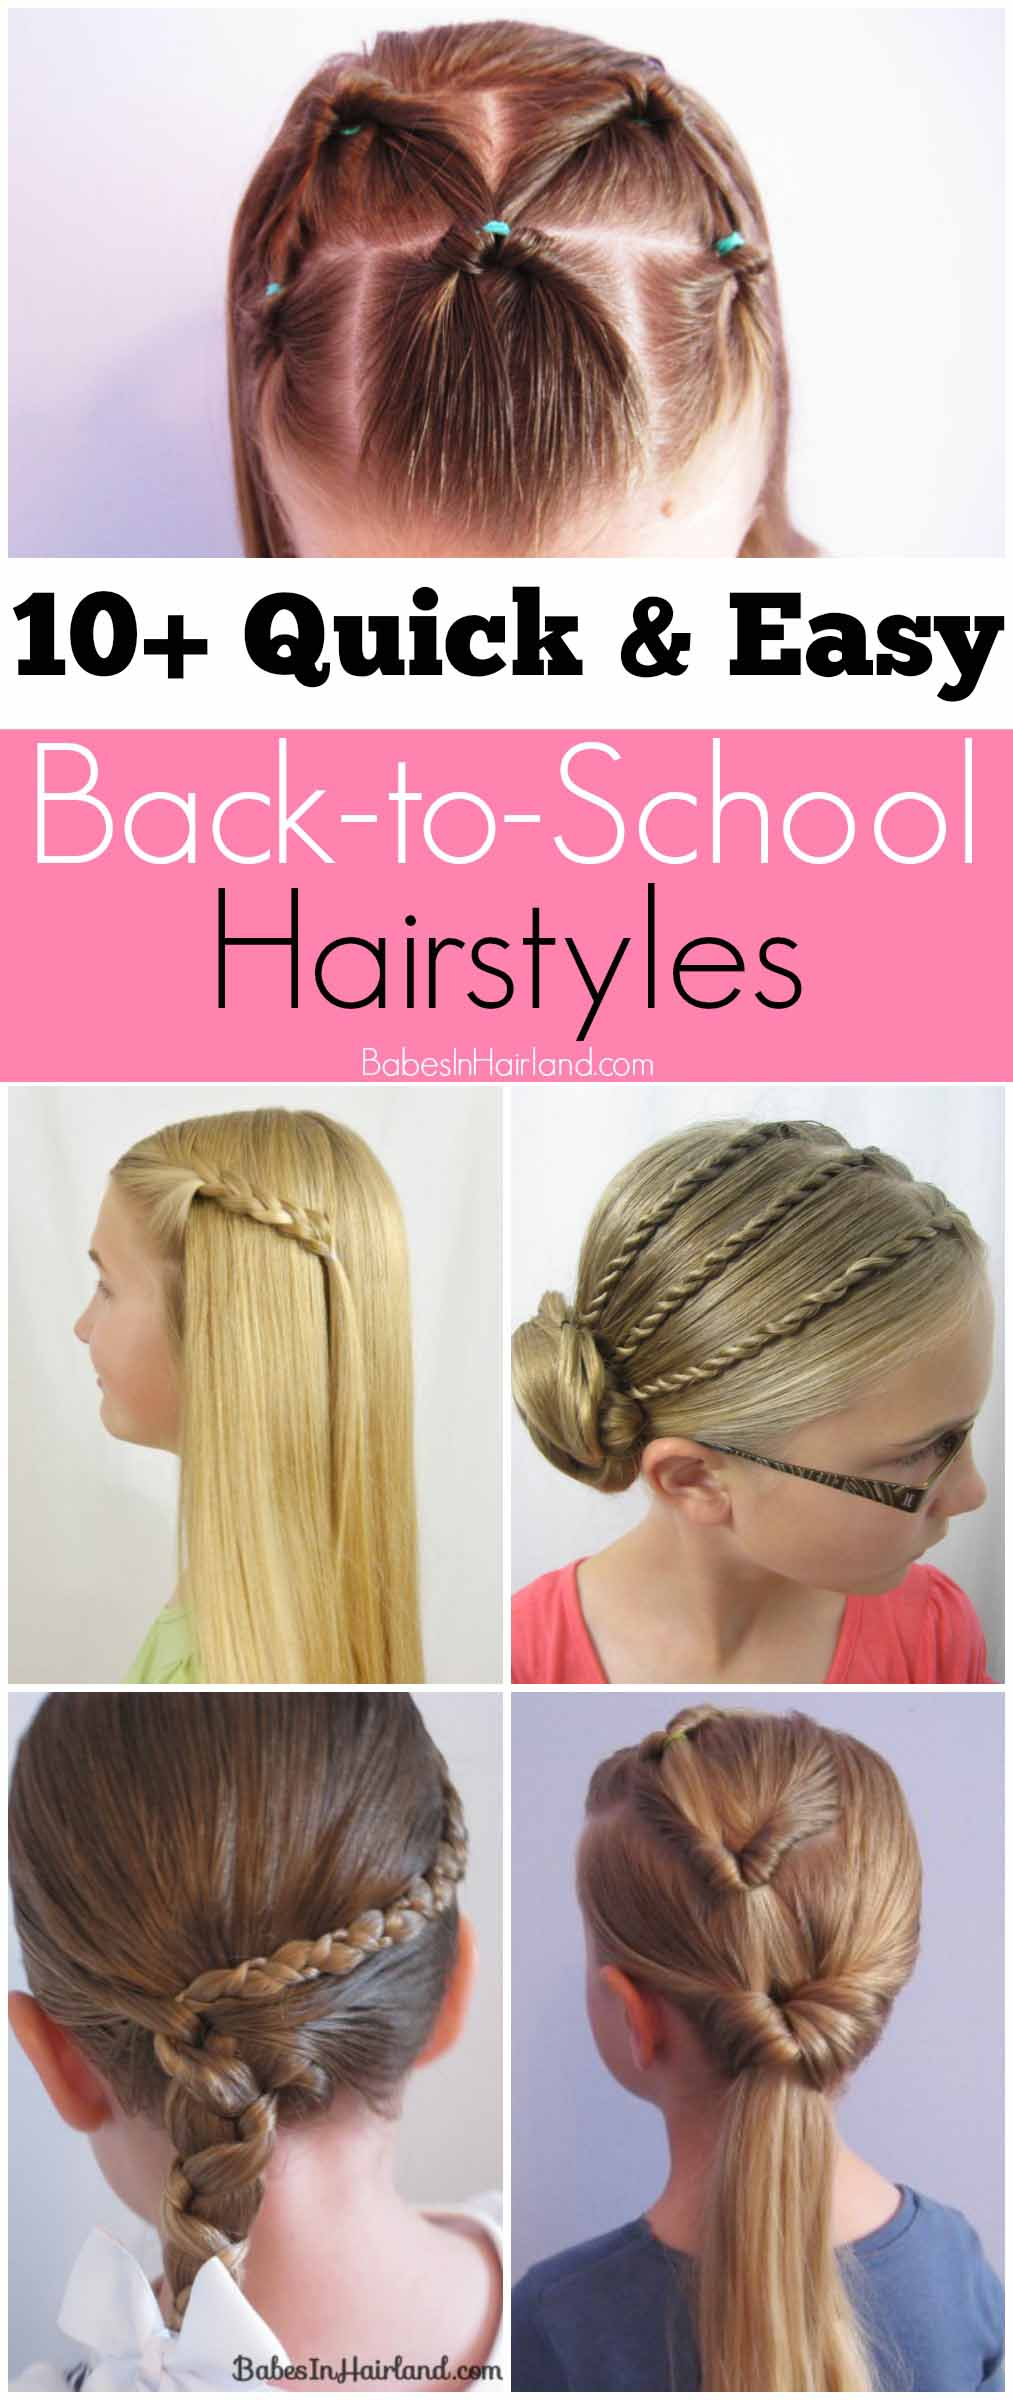 Swell 10 Quick And Easy Back To School Hairstyles Babes In Hairland Hairstyles For Men Maxibearus